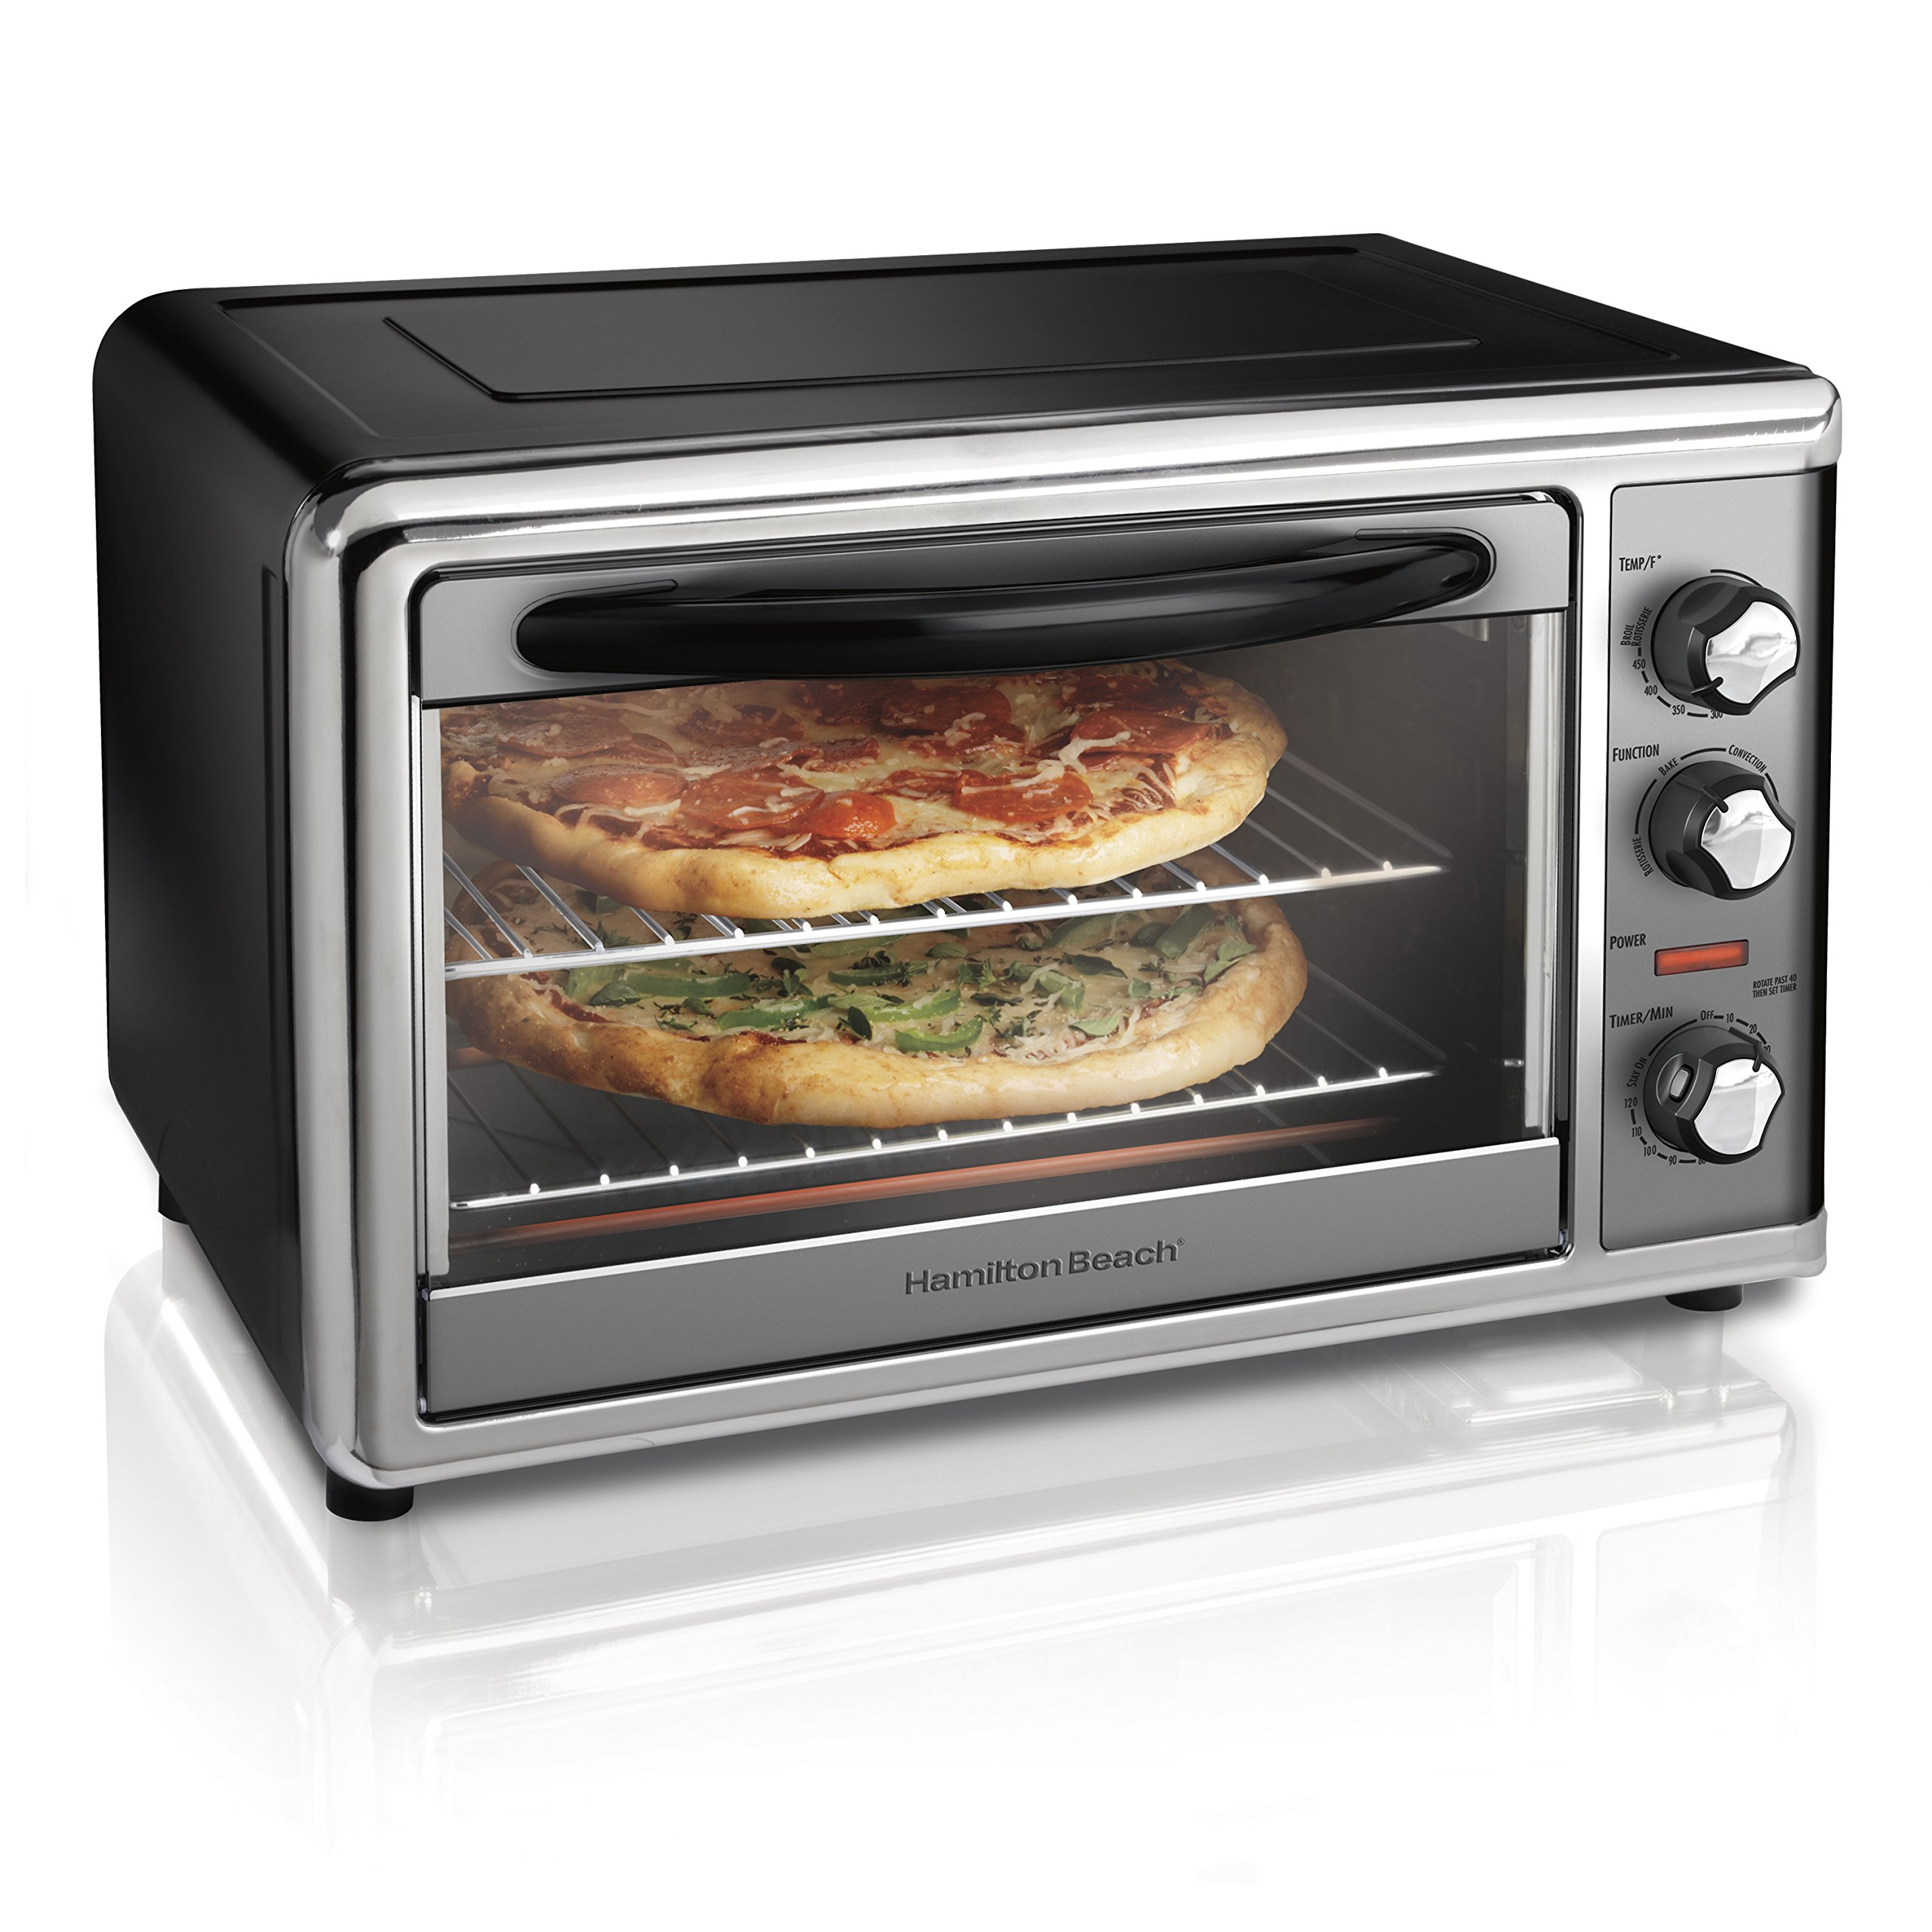 Hamilton Beach 31107D Countertop Oven with Convection & Rotisserie, Large, Stainless Steel by Hamilton Beach (Image #1)